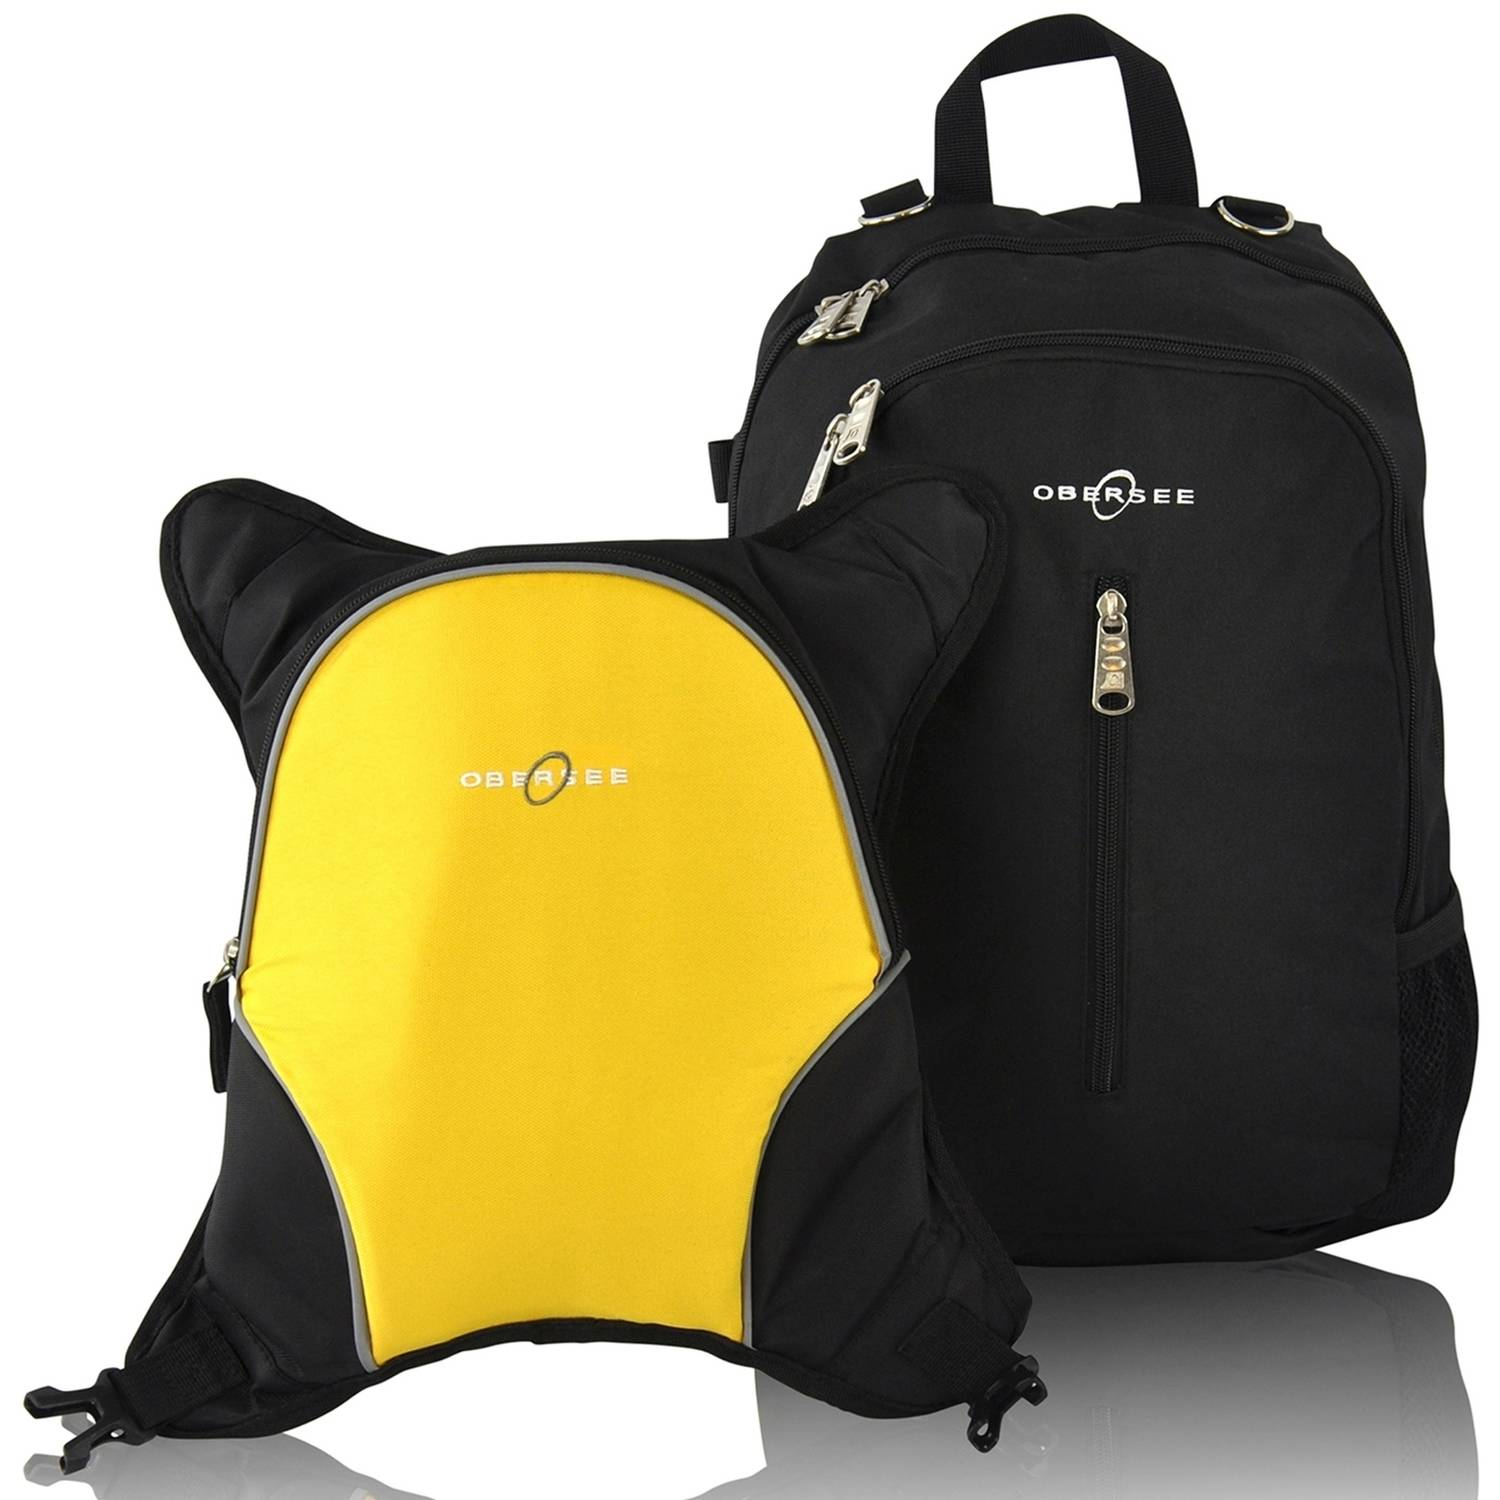 Obersee Rio Diaper Bag Backpack with Detachable Cooler, Black/Yellow